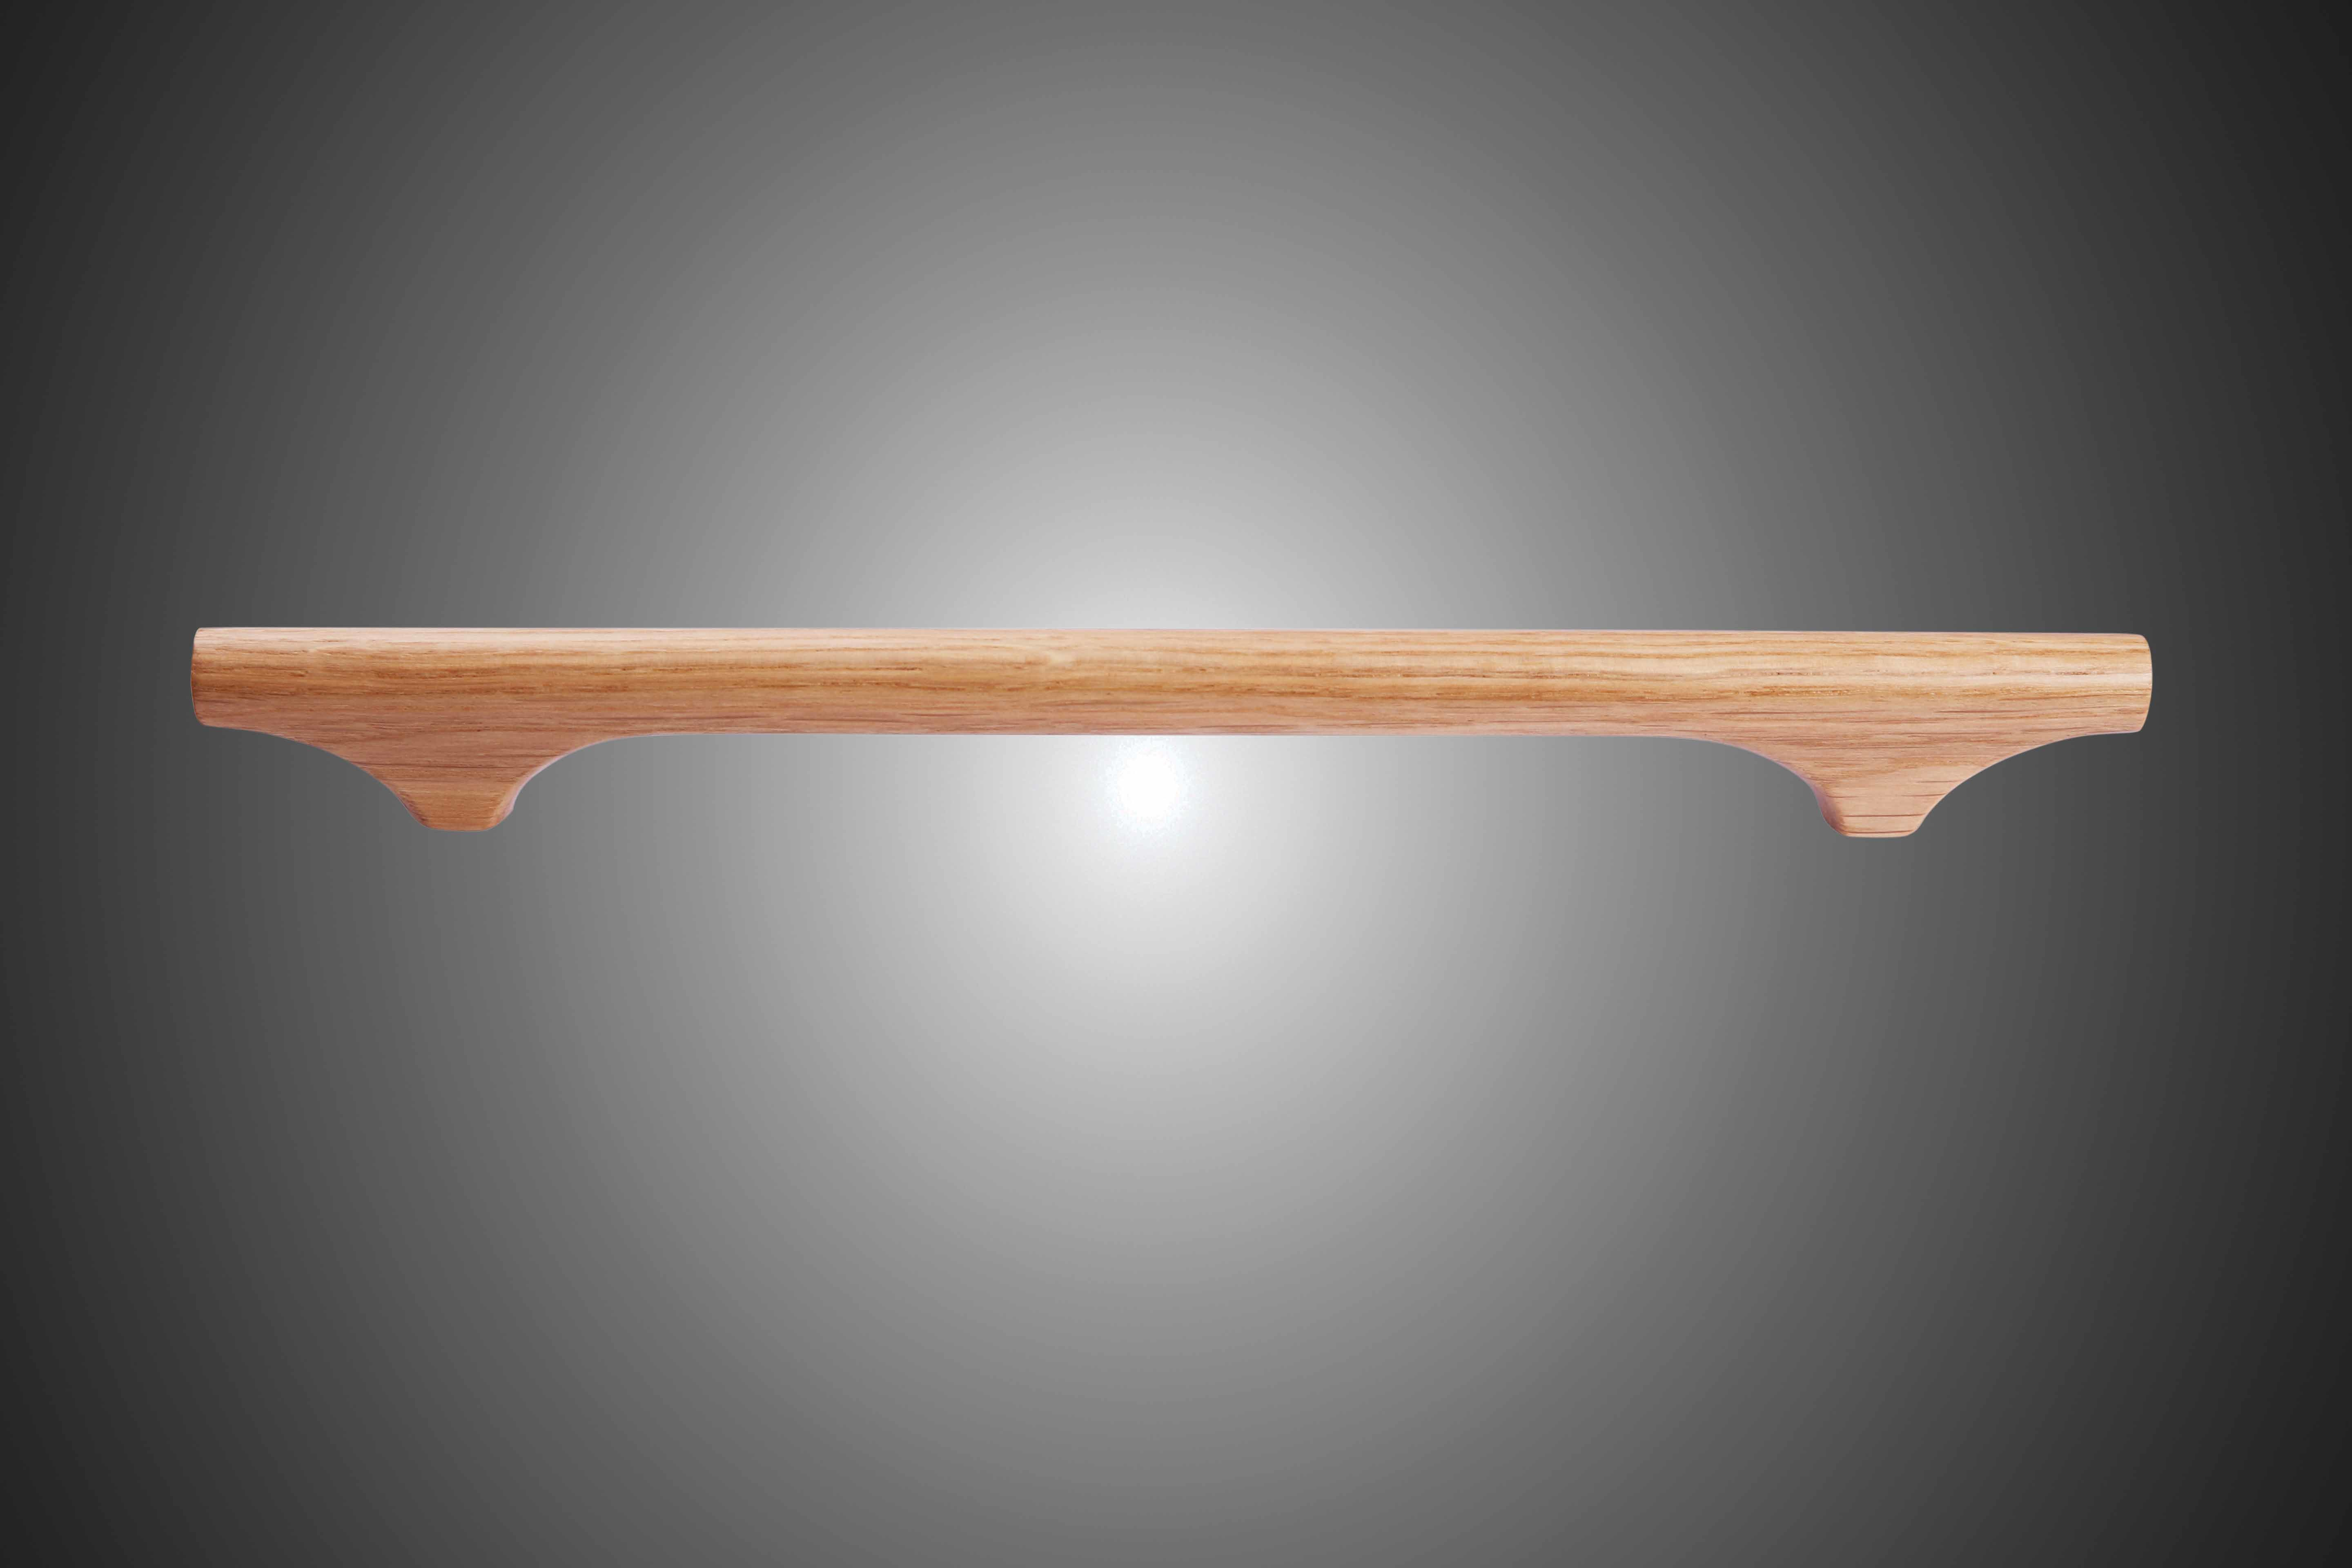 Taigo Wood Cabinet Handle